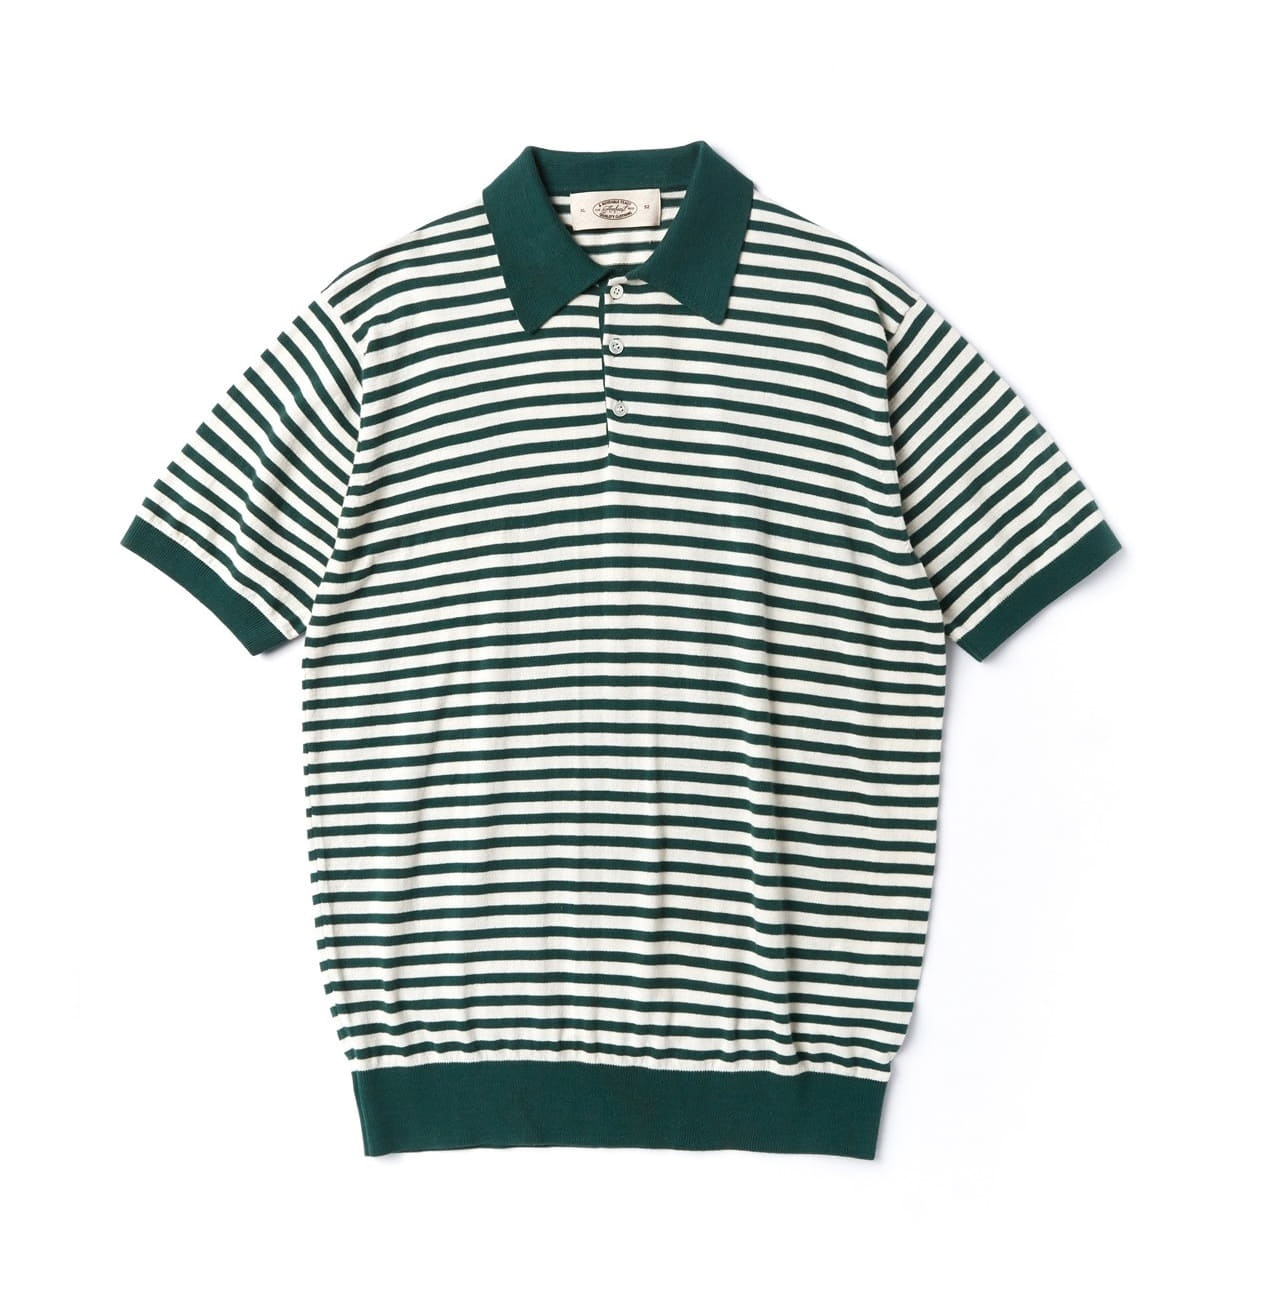 PABLO COLLAR SUMMER KNITWEAR GREENAMFEAST(암피스트)